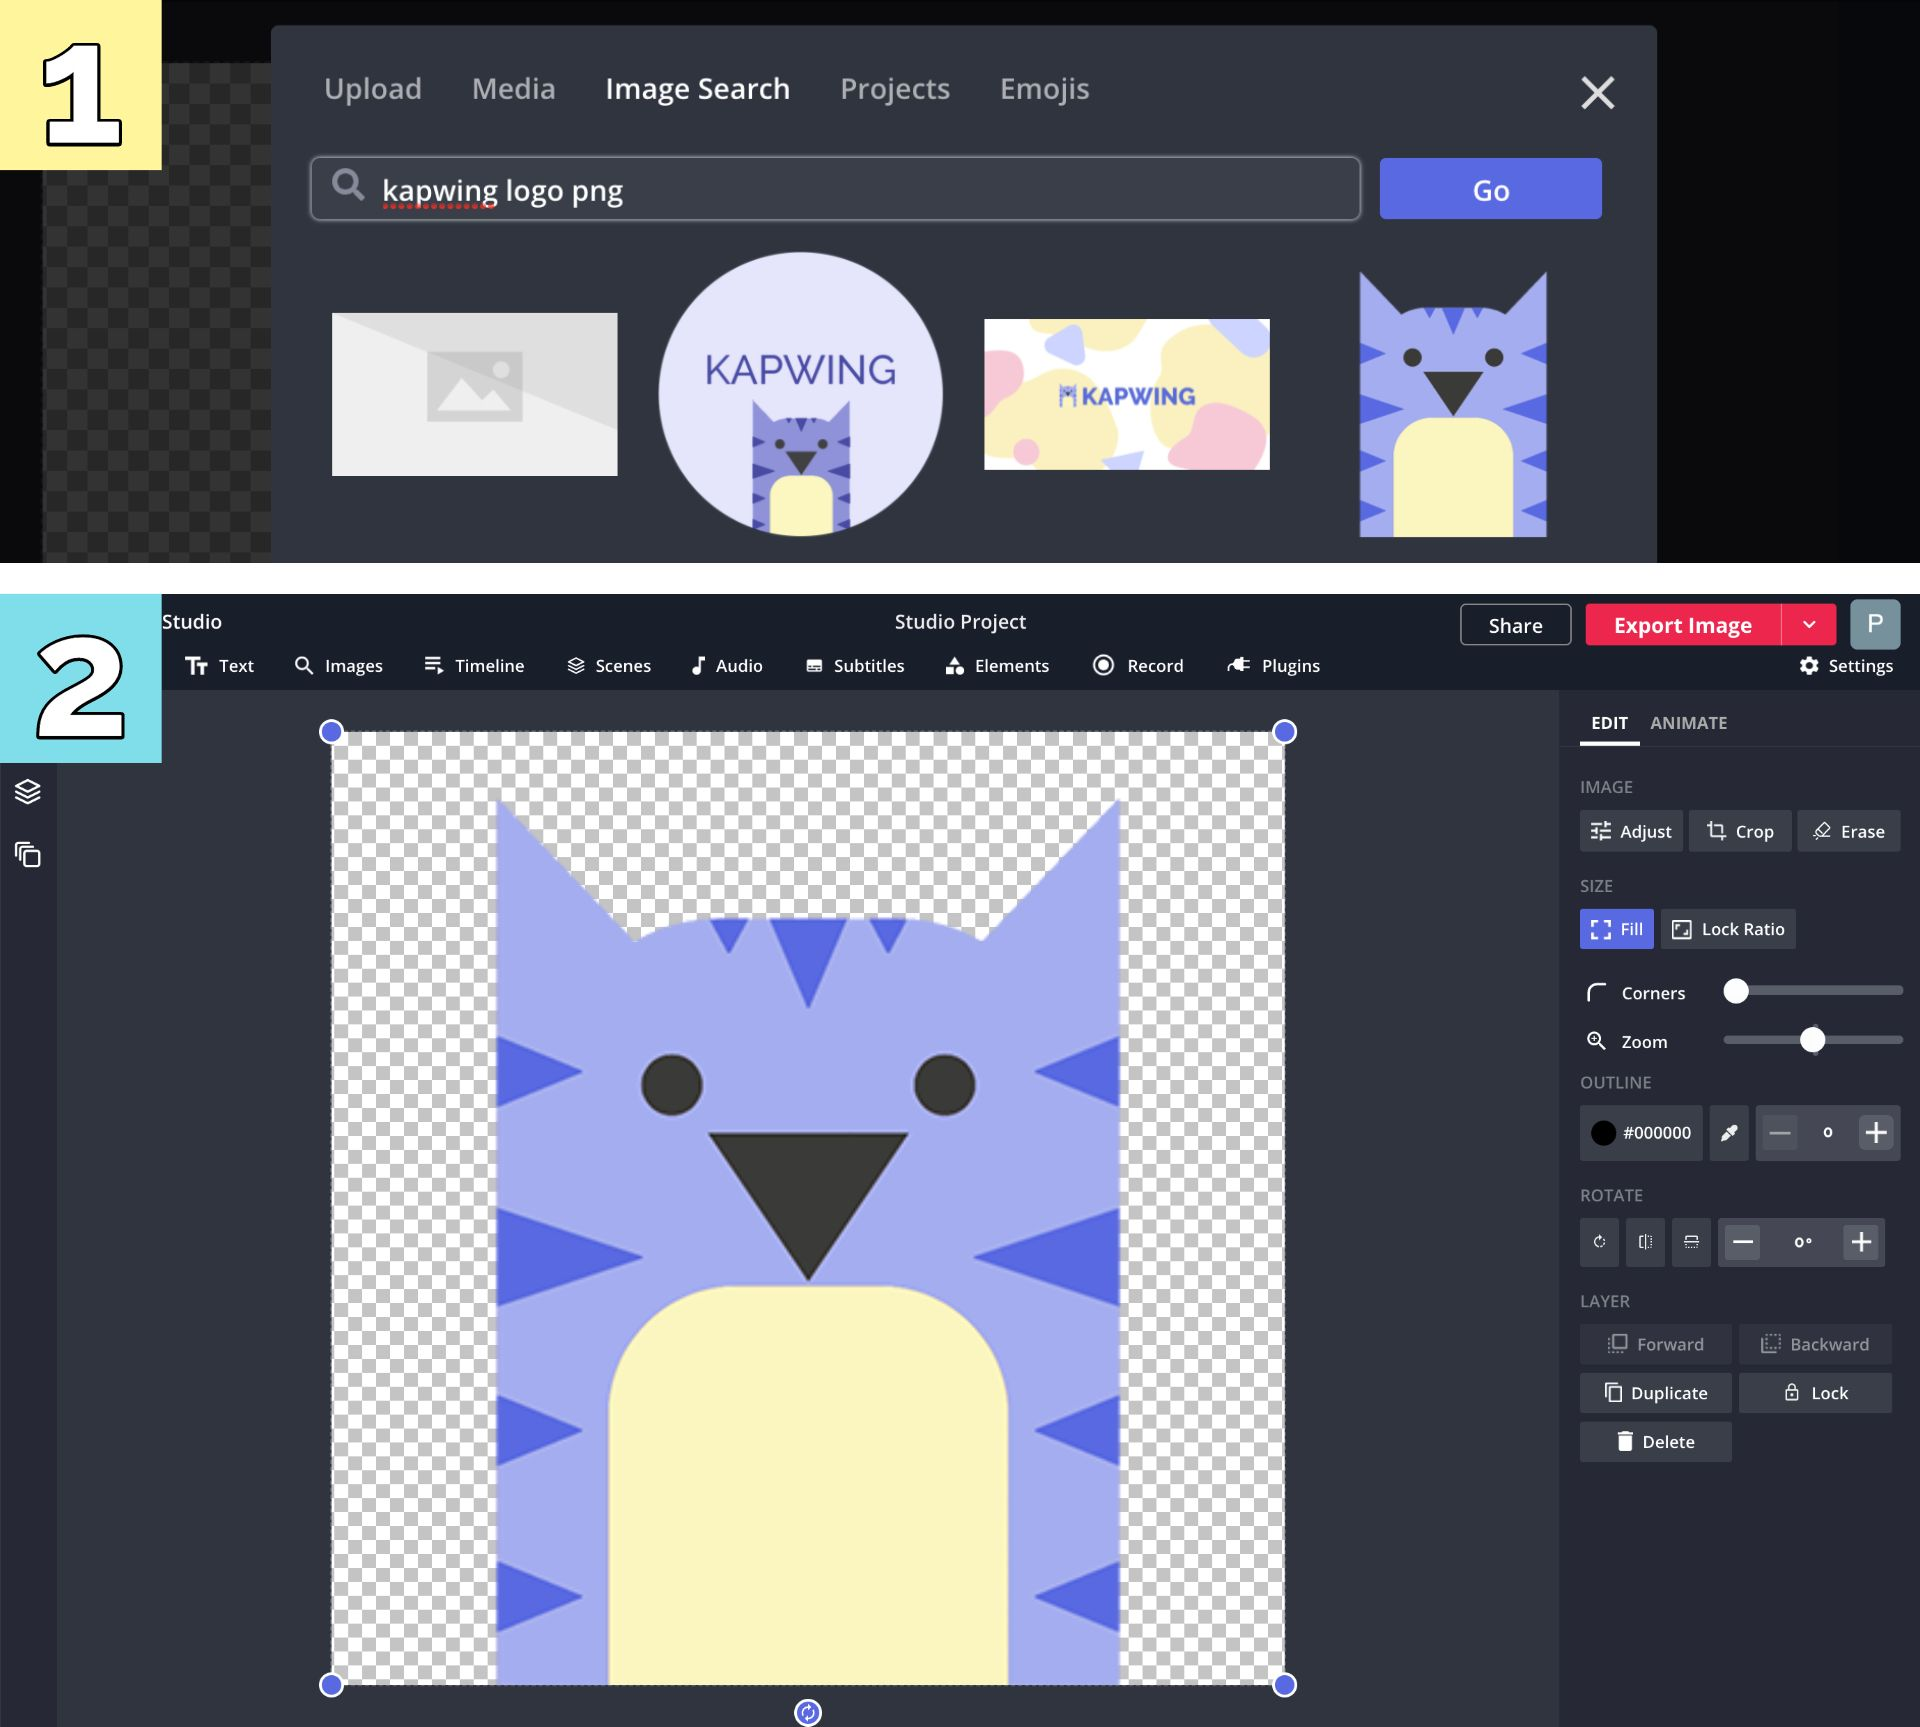 Screenshots showing how to remove the background from an image in the Kapwing Studio.